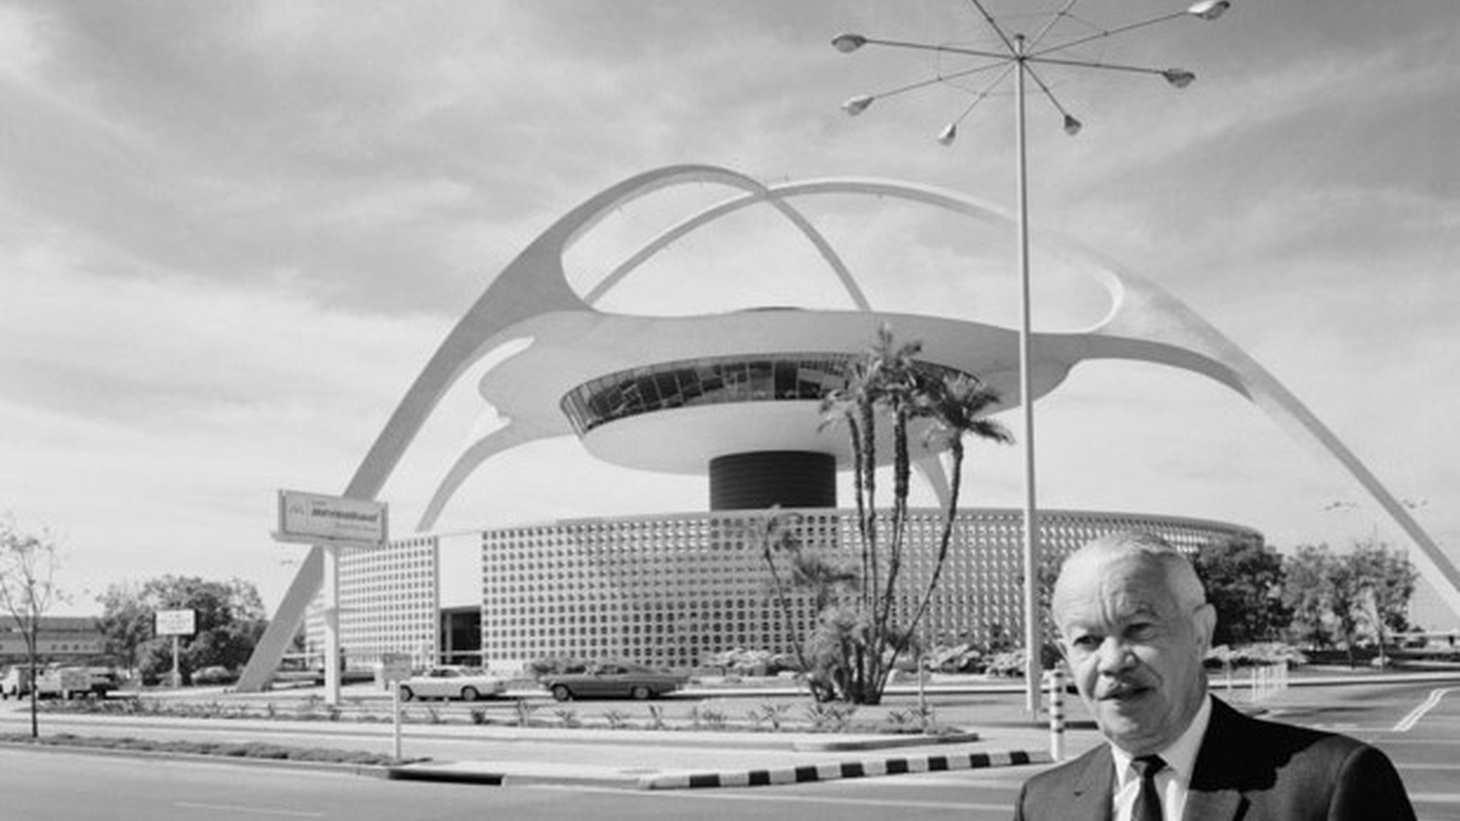 Paul Revere Williams was part of the team that designed the Theme Building at Los Angeles International Airport Photo courtesy Julius Shulman Photographic Archive/The Getty Research Institute   The late architect Paul Revere Williams is known for…